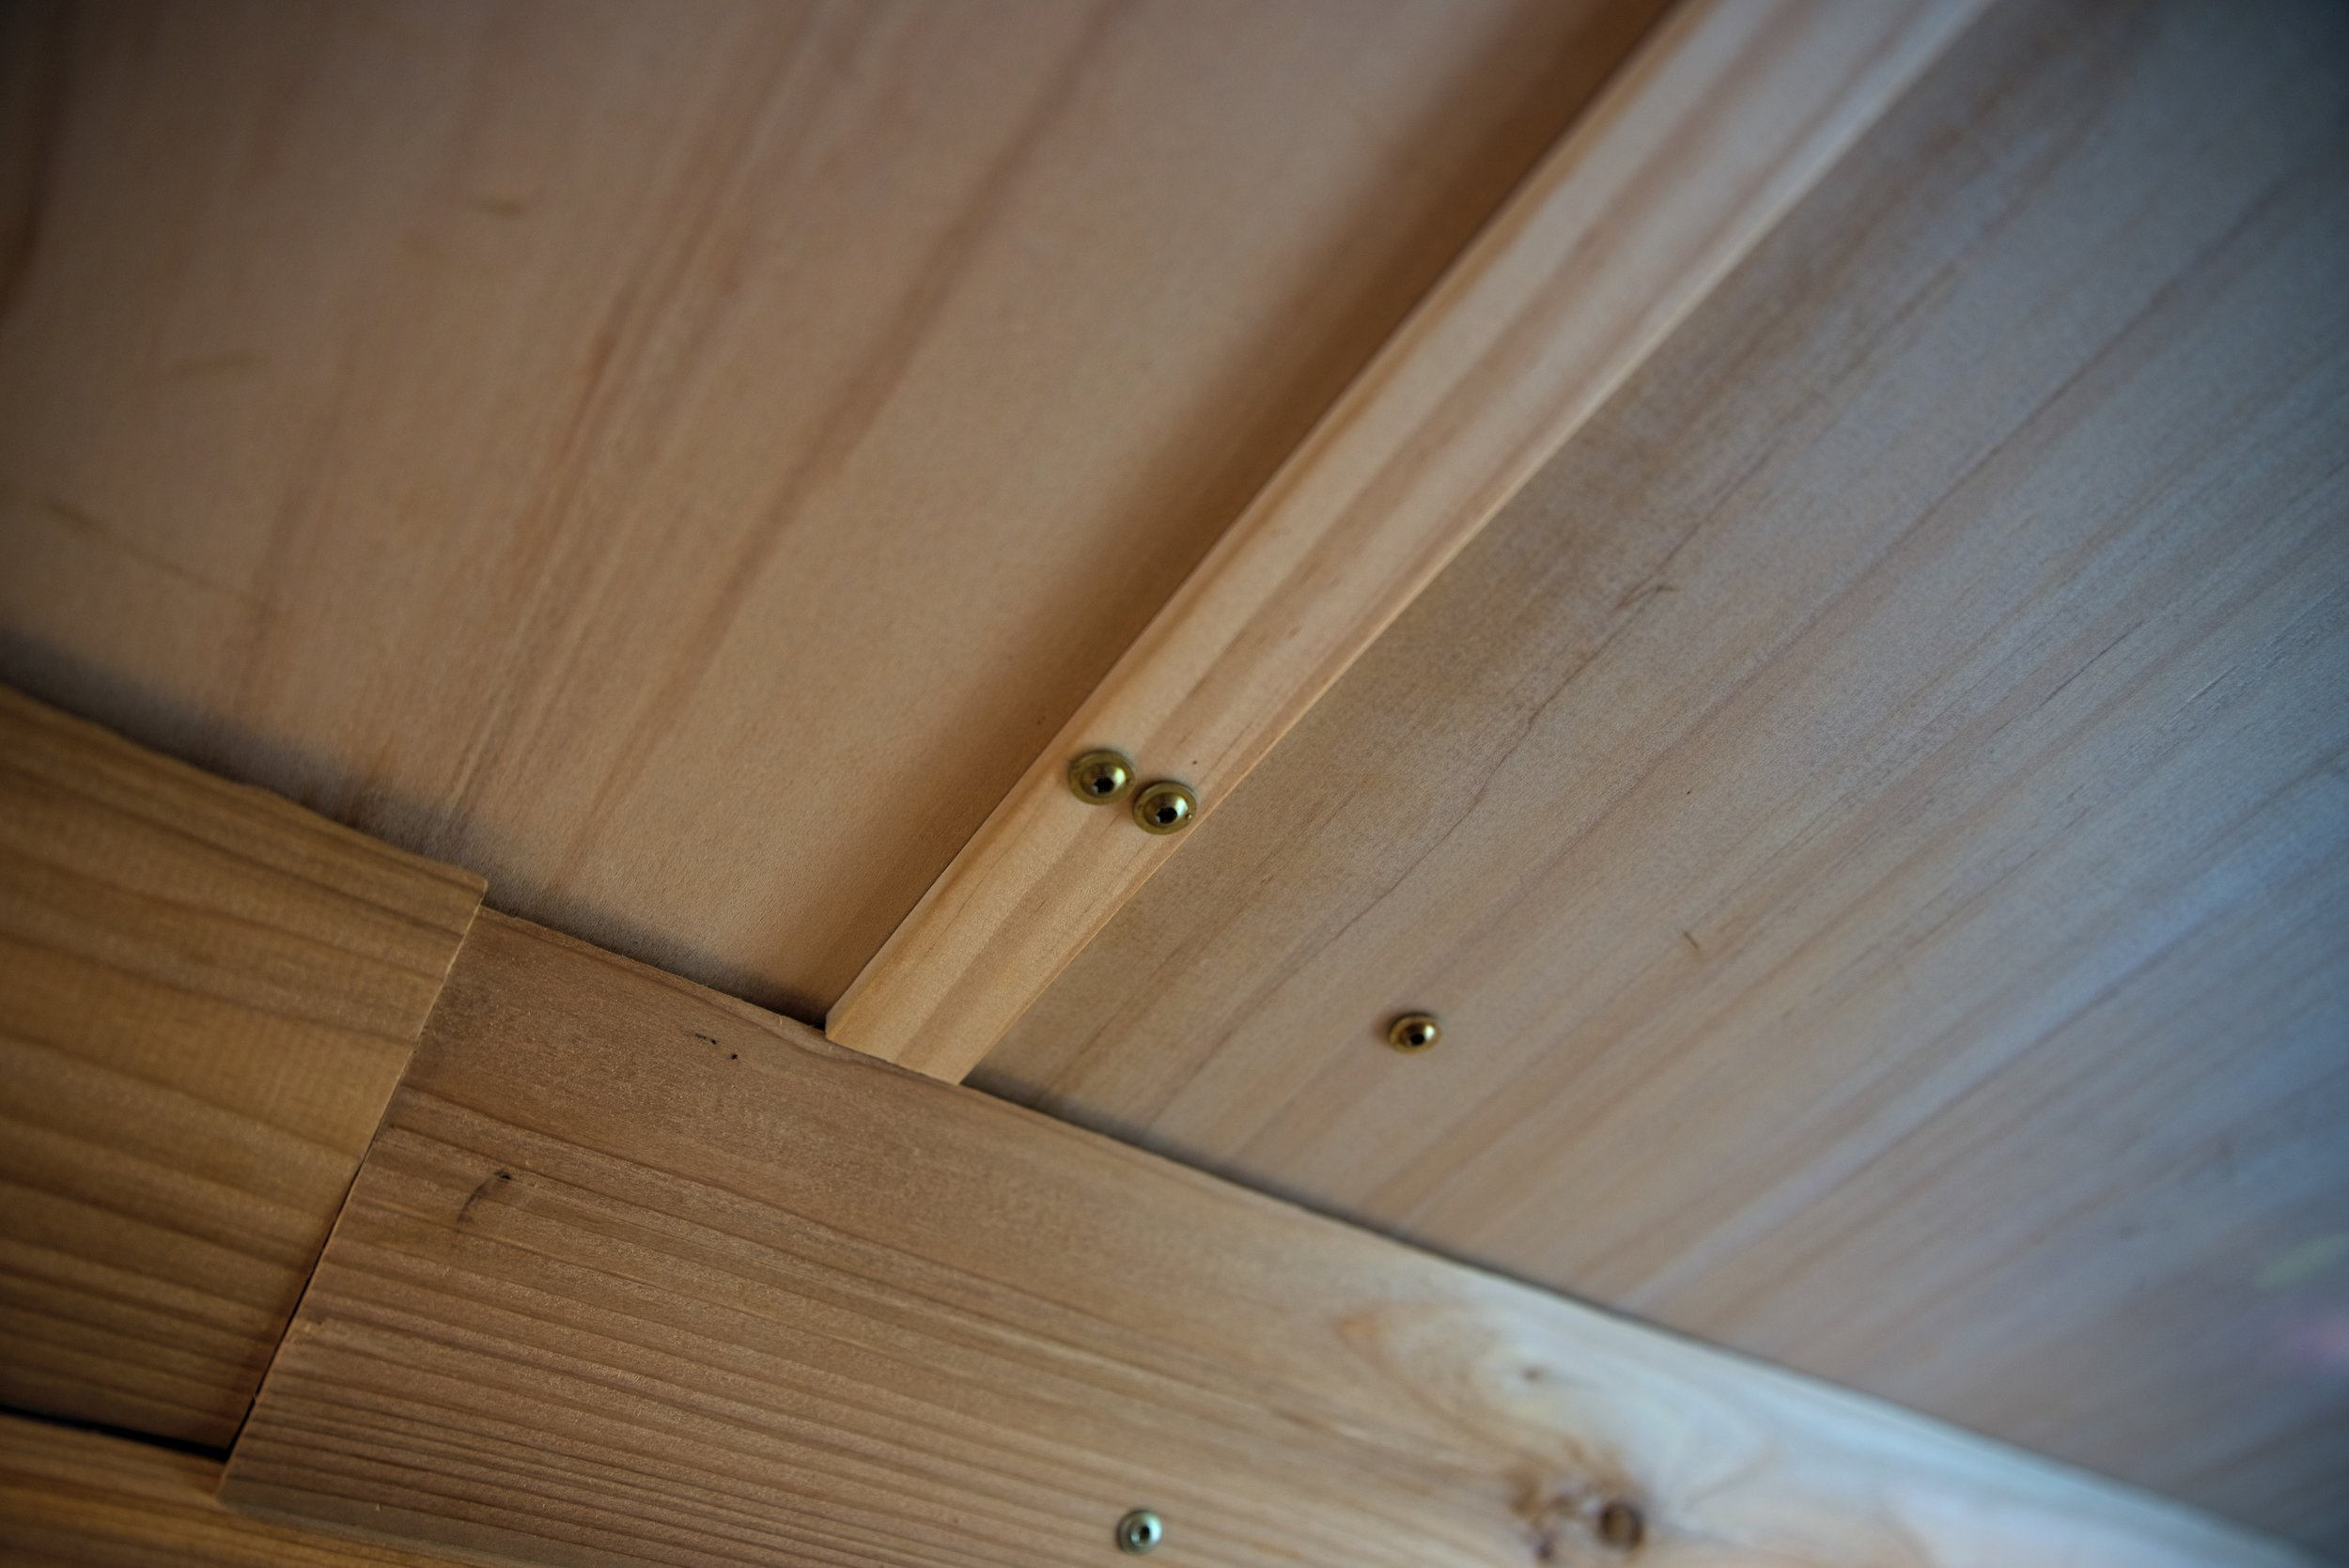 We put the screws in pairs, one into each ceiling panel, lining them up with the pairs in the other pieces of trim for a uniform look.